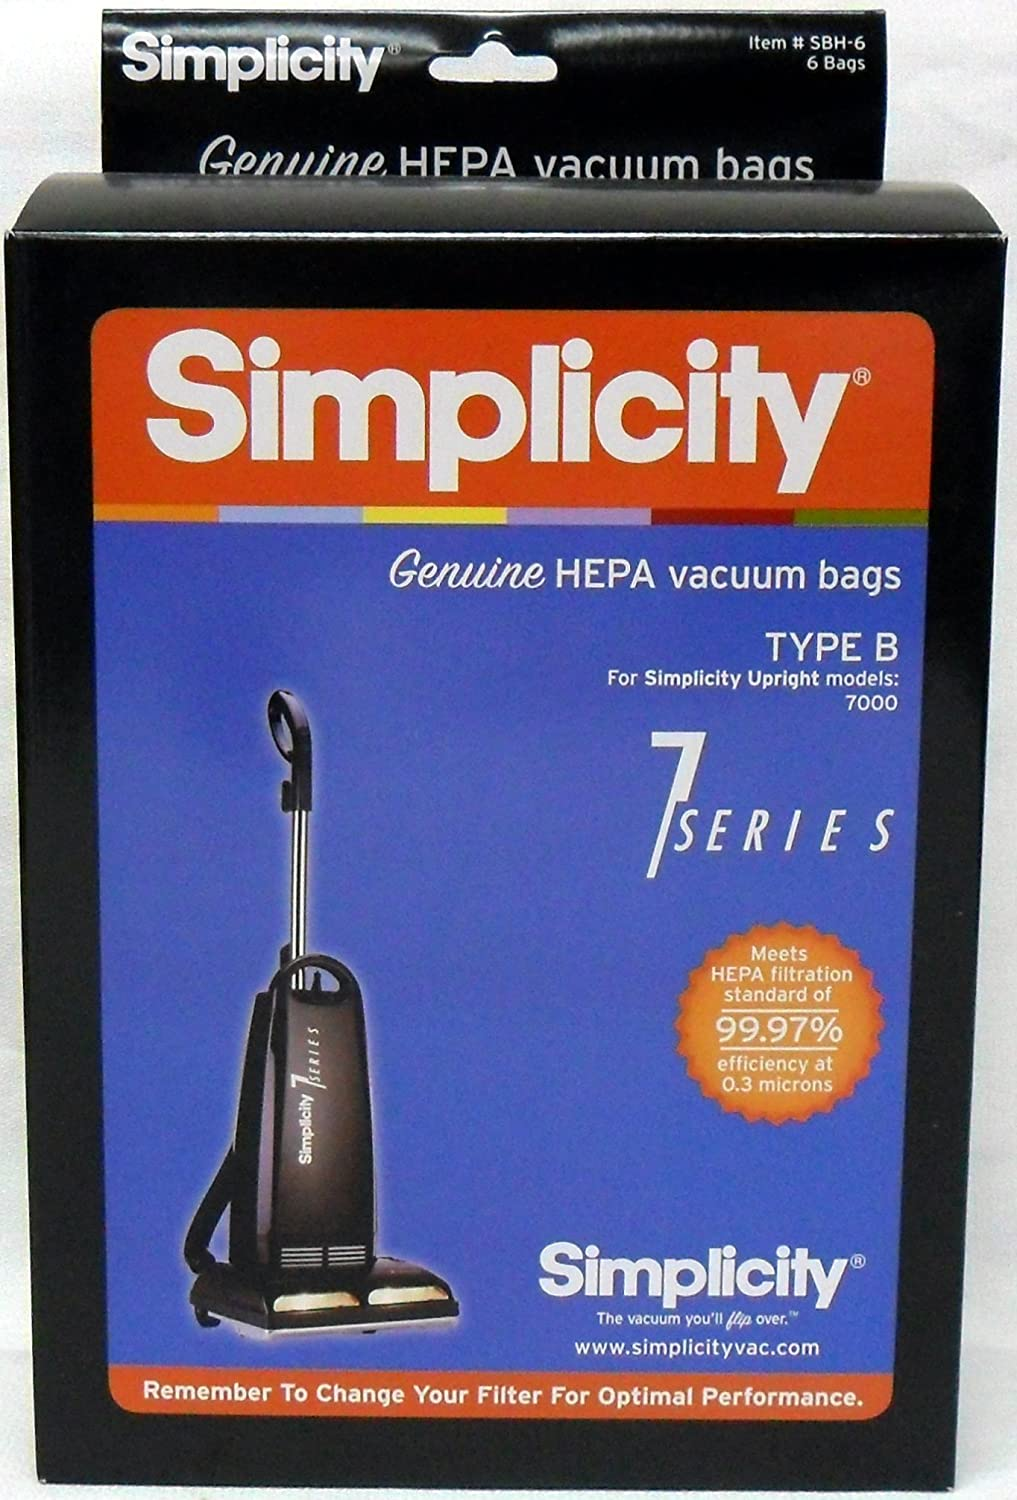 Simplicity Type B Genuine HEPA Vacuum Bags for Upright Models 7000 (Pack of 6)